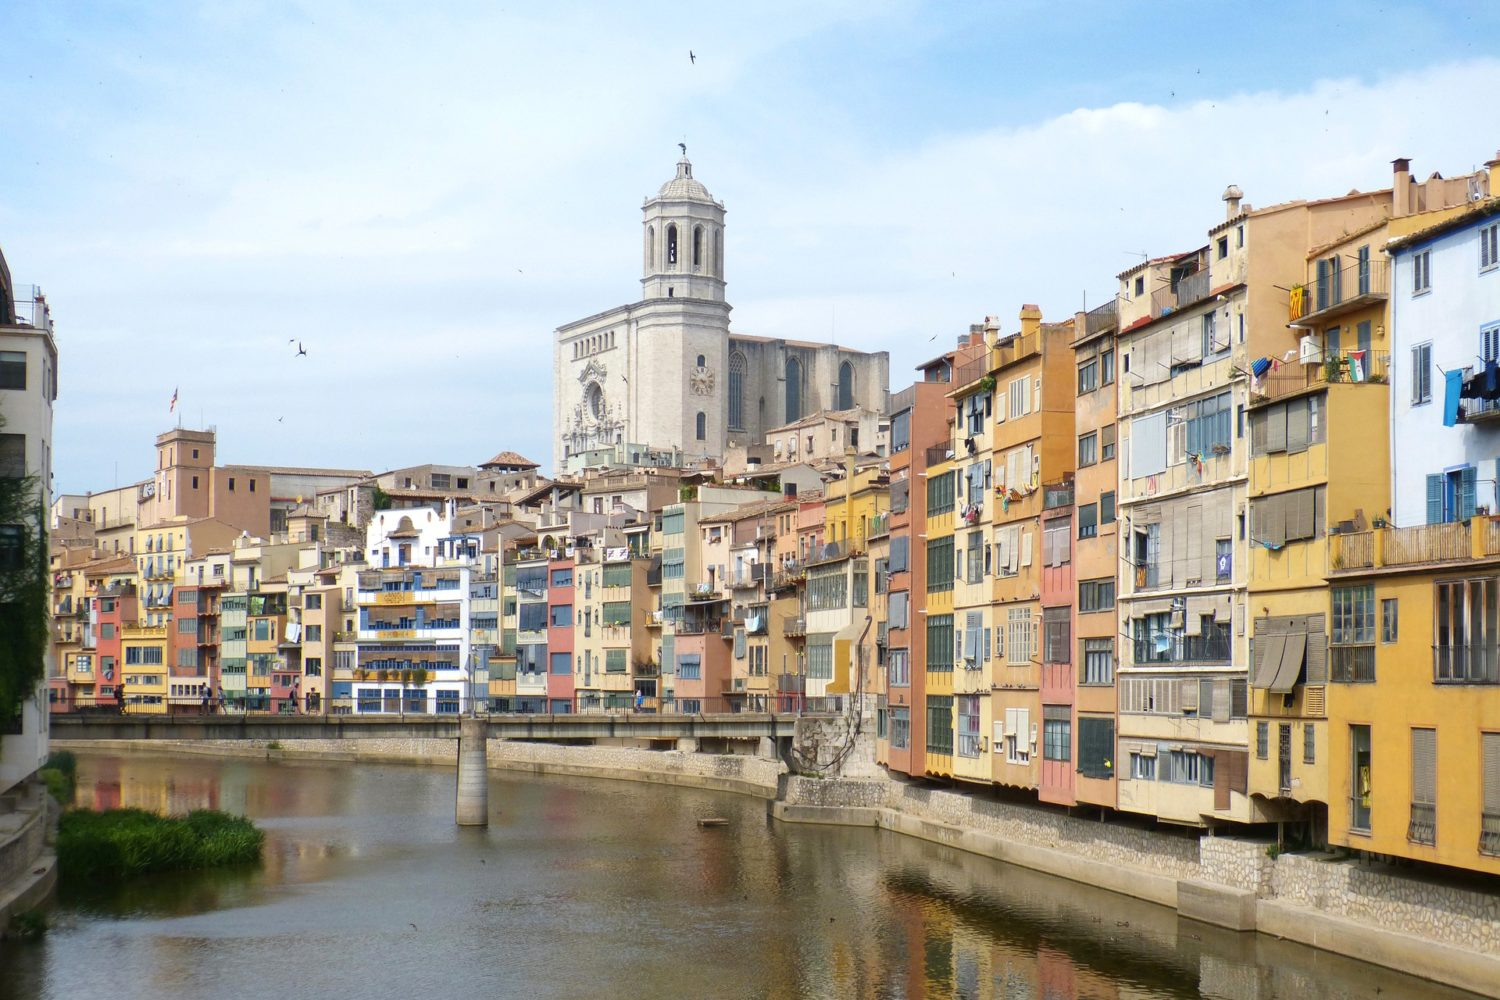 Self guided tour of Costa Brava, Spain, starts in Barcelona and finishes in Girona